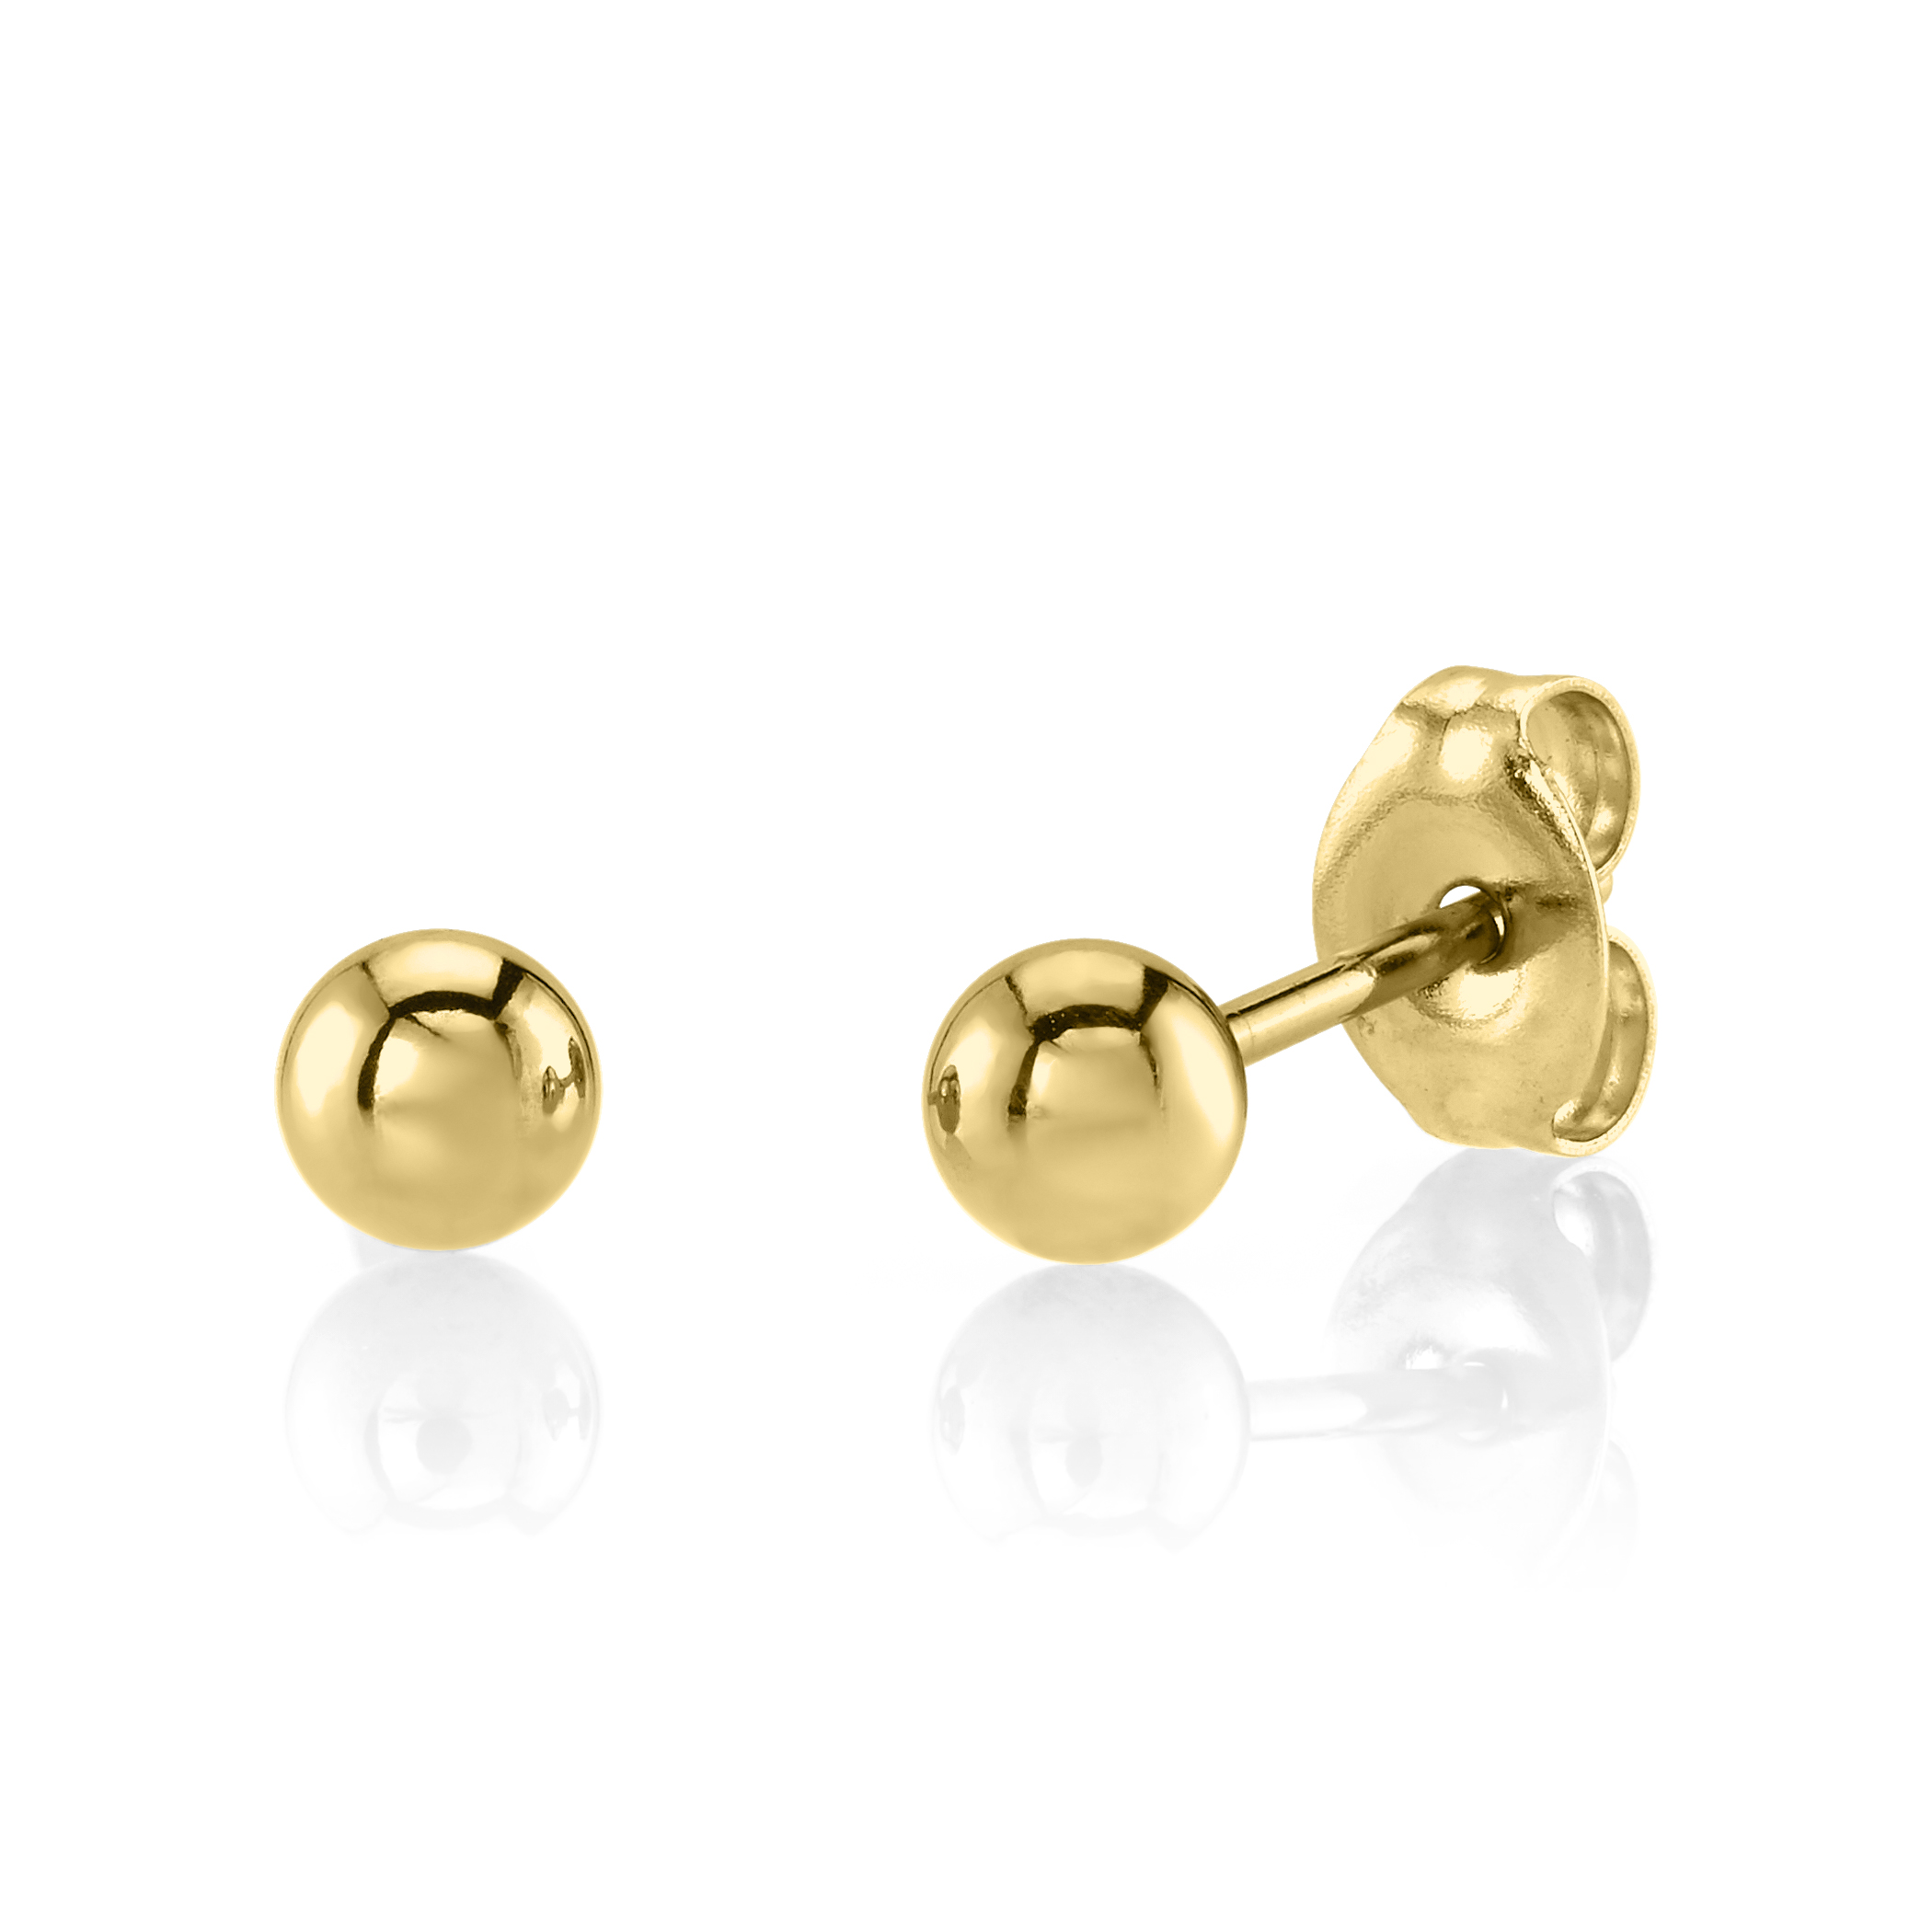 Gold Plated Stainless Steel 3MM Baby Post Ball Ear Piercing Studs